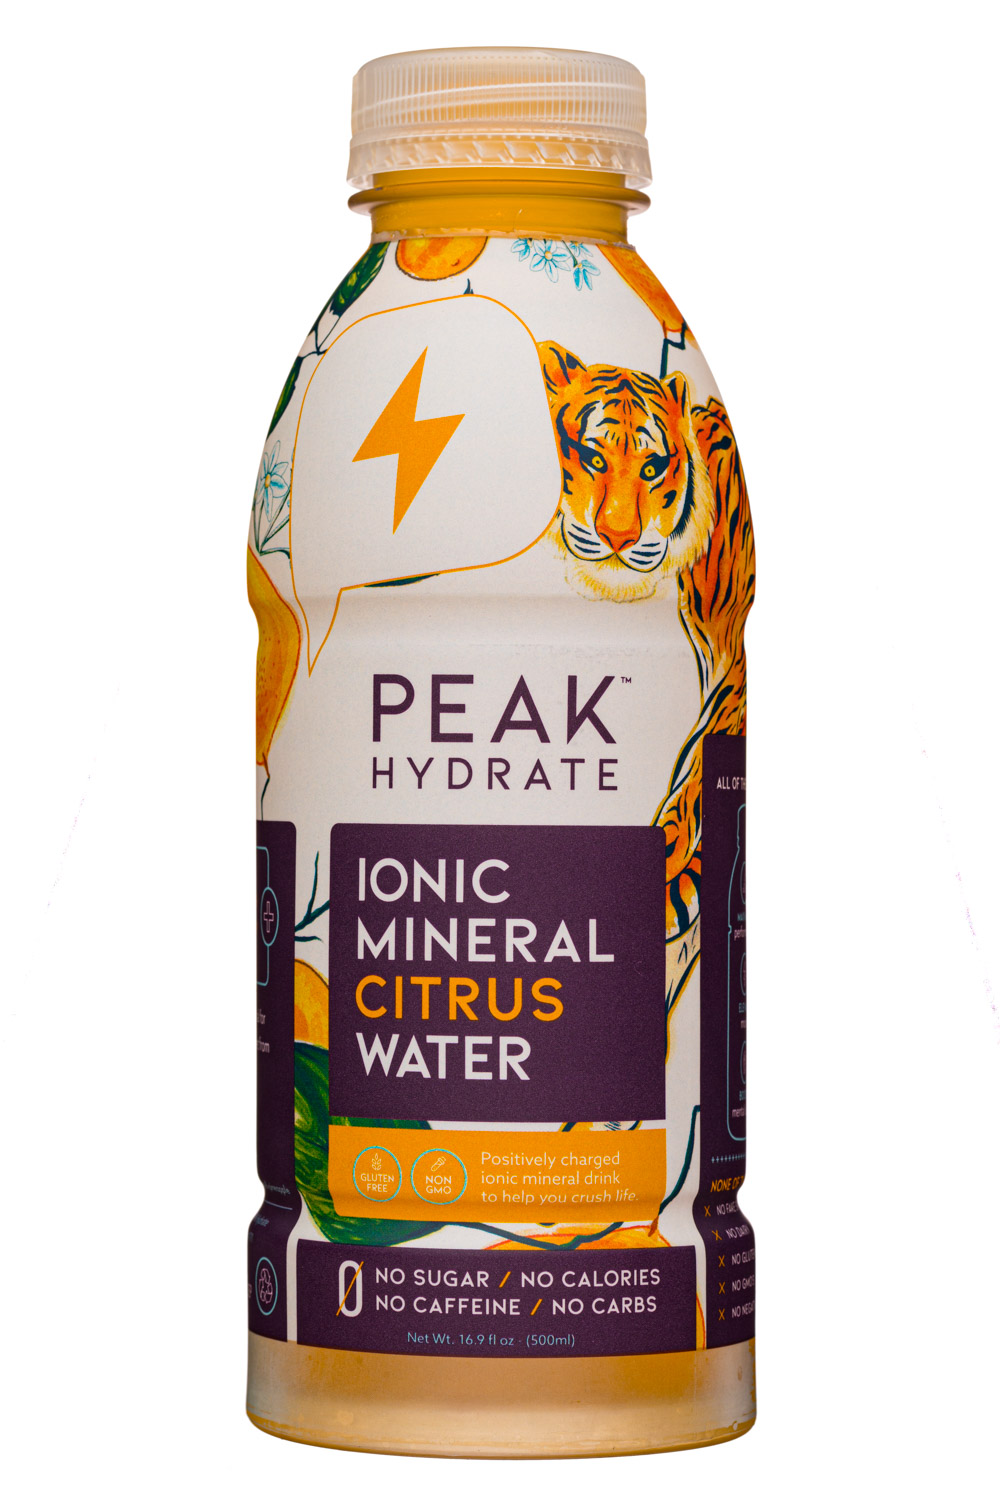 Peak Hydration: PeakHydrate-17oz-MineralWater-Citrus-Front